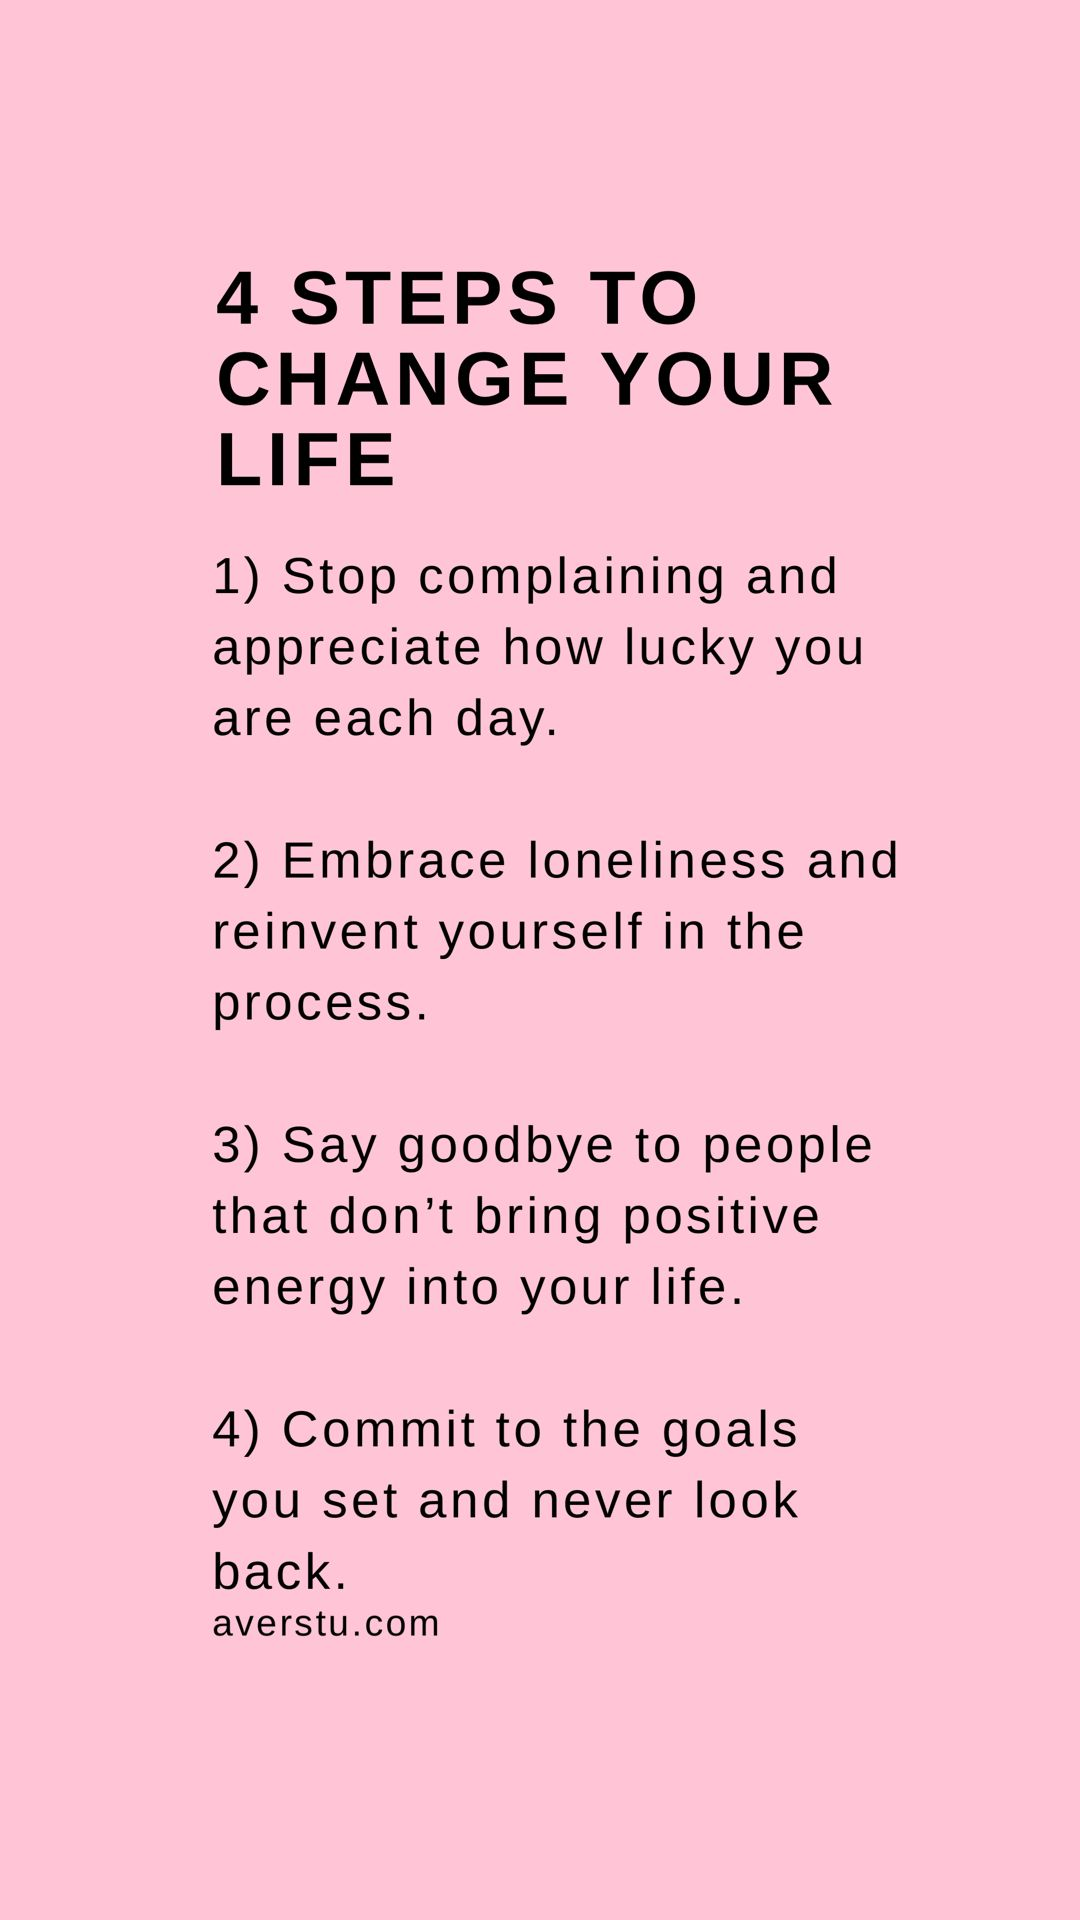 150 Top Self Love Quotes To Always Remember (Part 5) - The Ultimate Inspirational Life Quotes